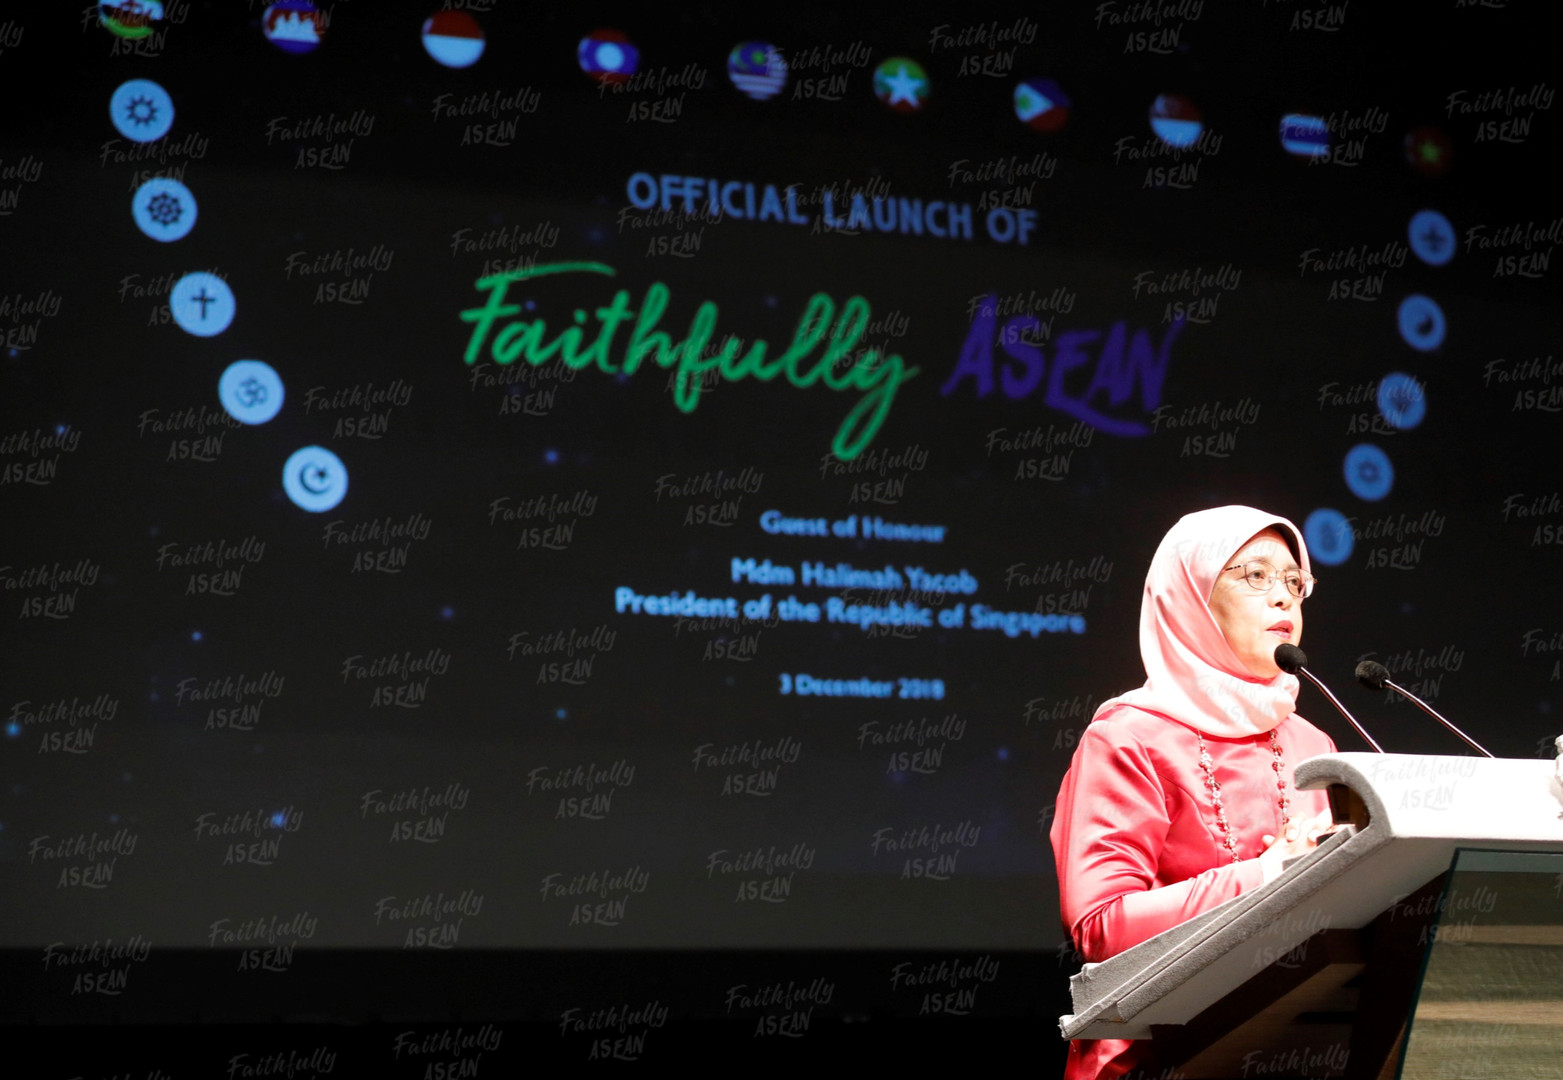 President Halimah Yacob officially launched the Faithfully Asean on 3 December 2018 in Singapore.